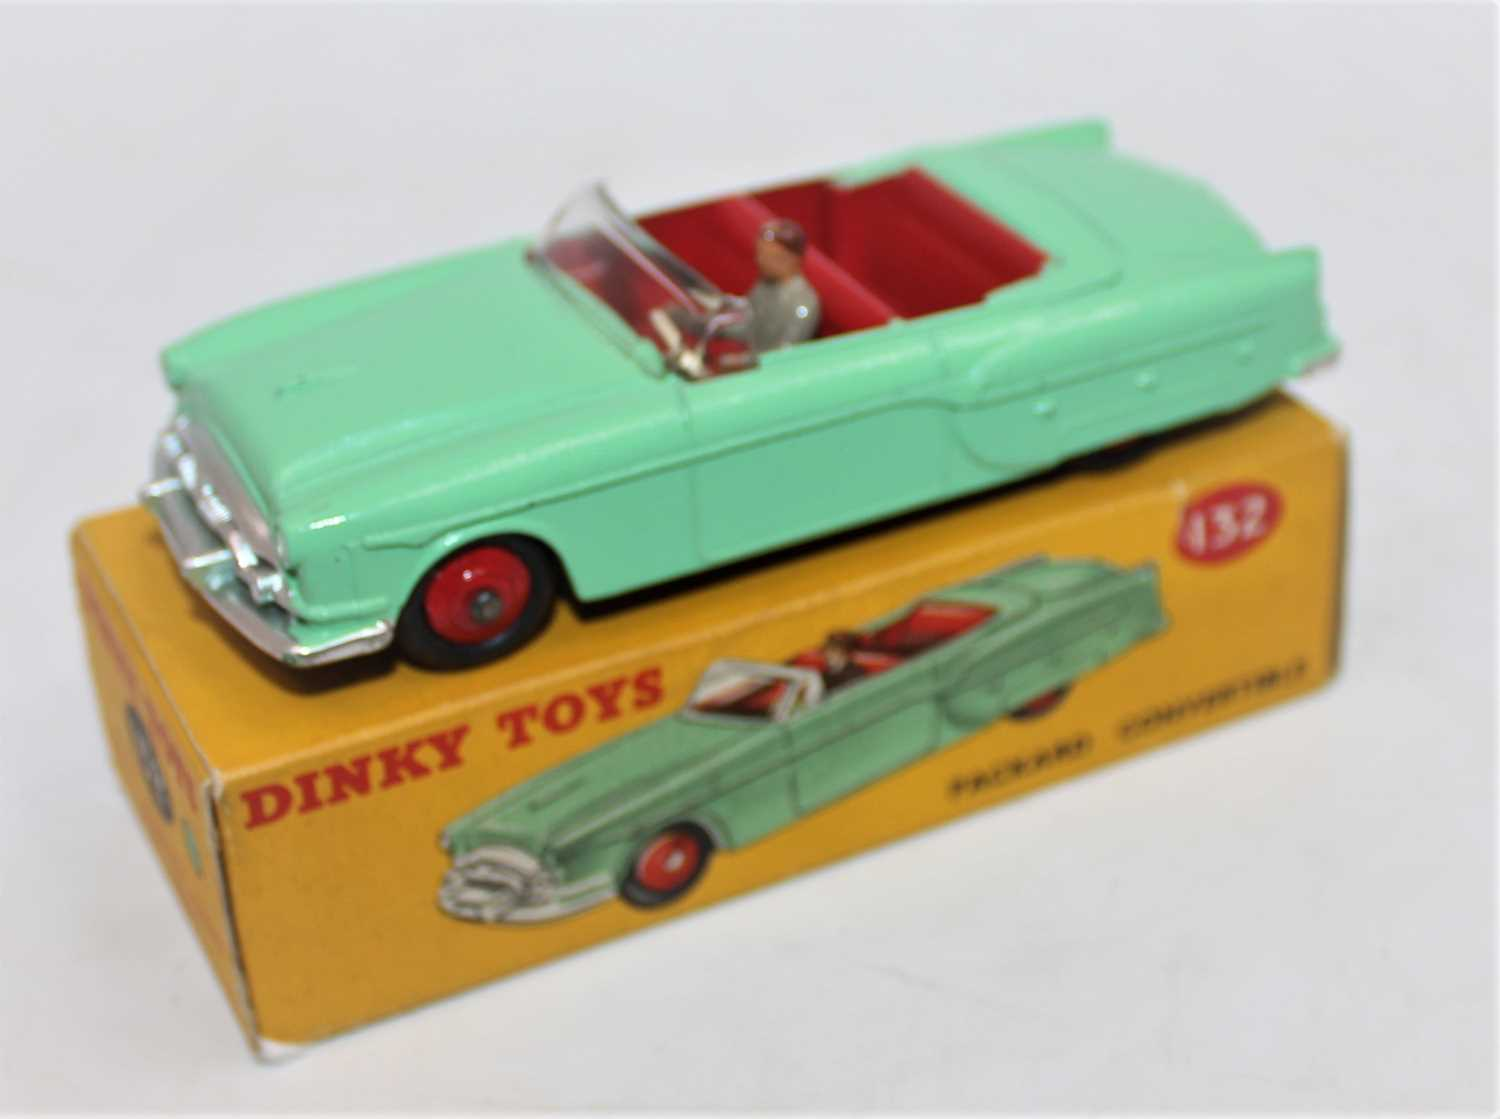 Dinky Toys 132 Packard Convertible with green body, red interior and hubs and driver comes with